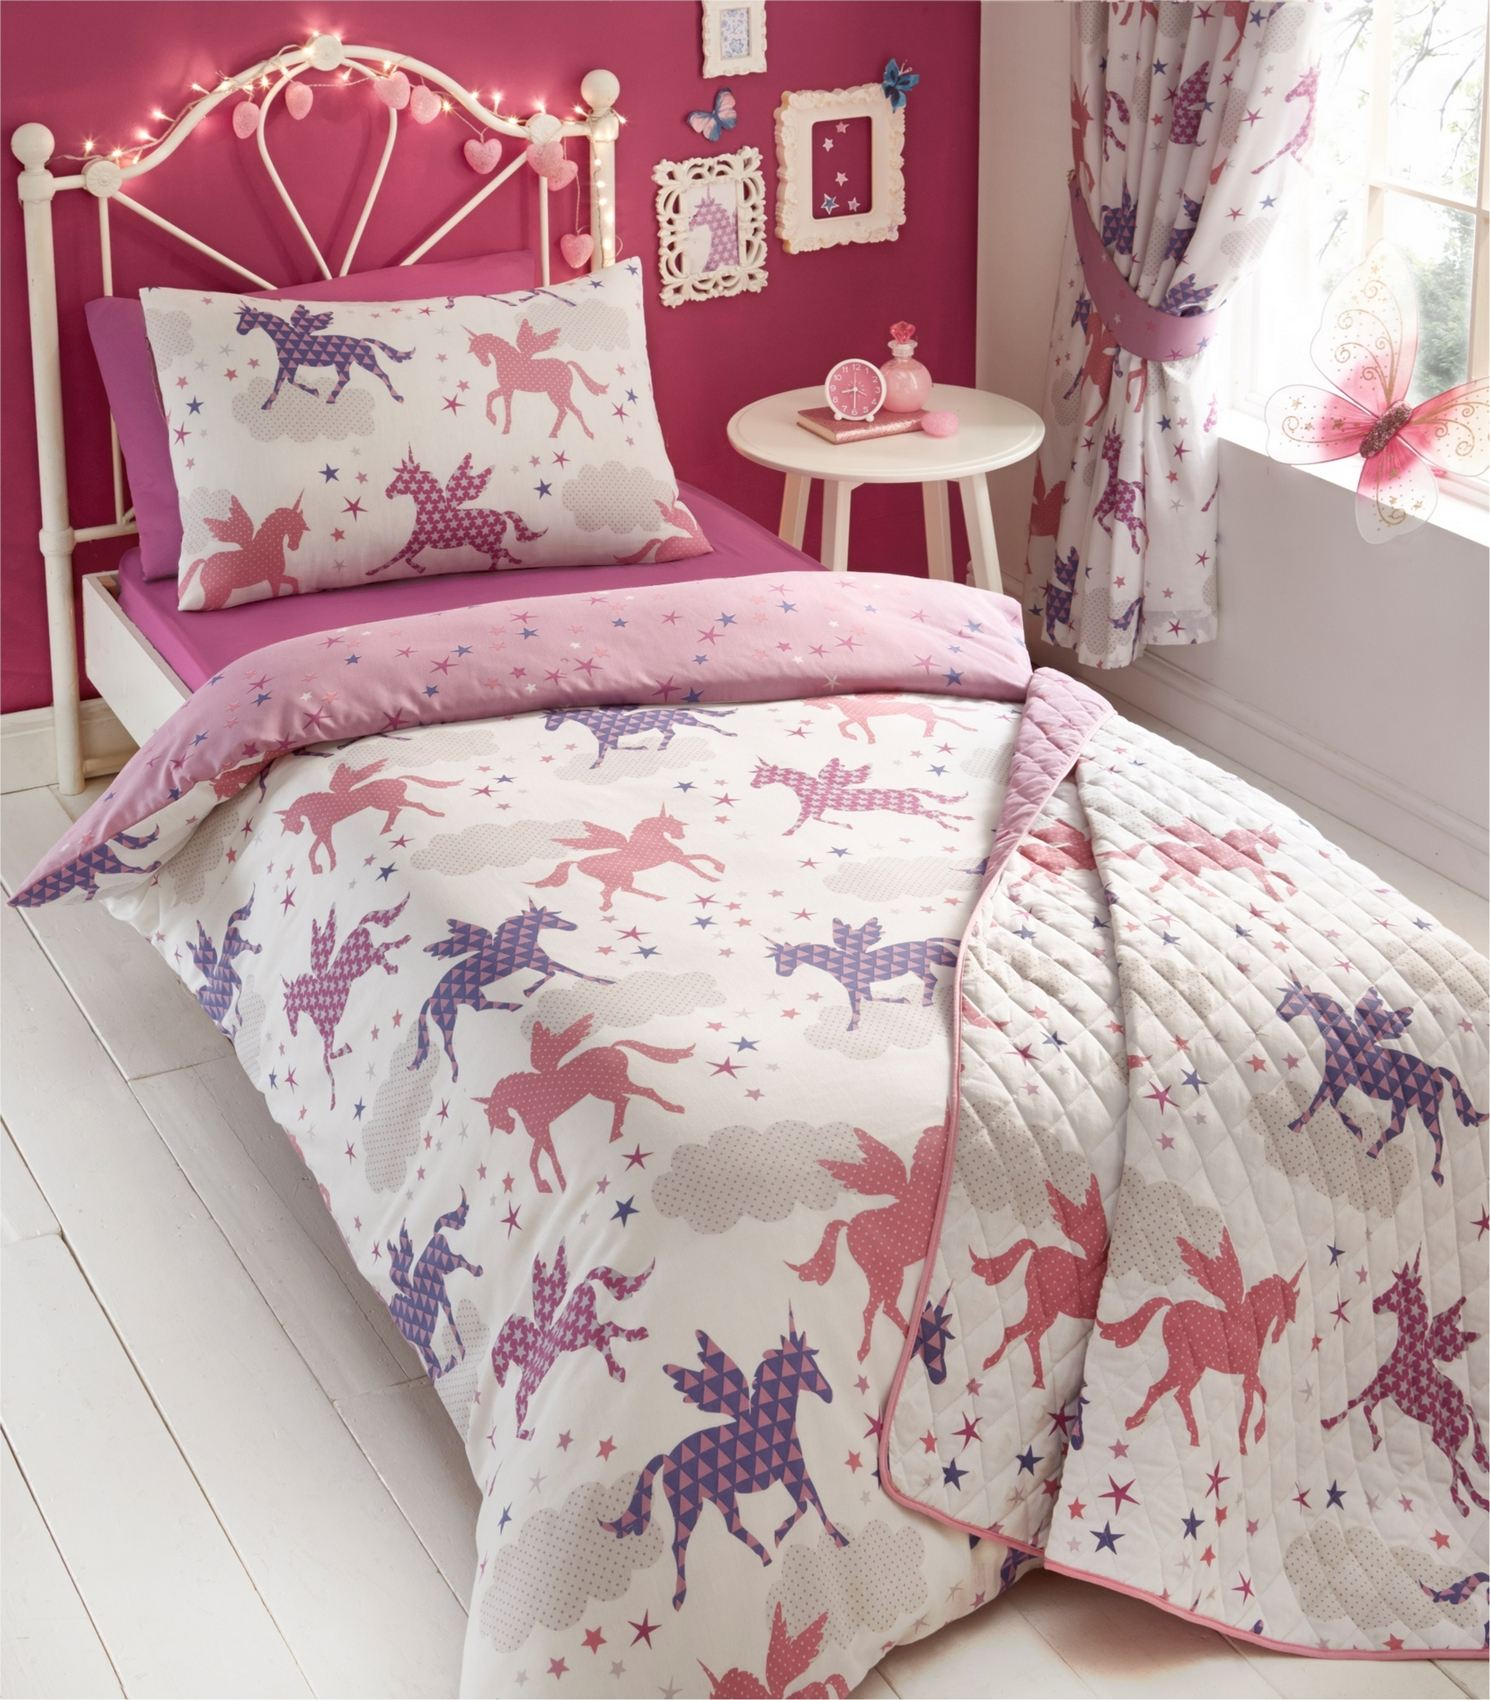 unicorns duvet cover pillowcase bedding bed set or curtains or throw ebay. Black Bedroom Furniture Sets. Home Design Ideas